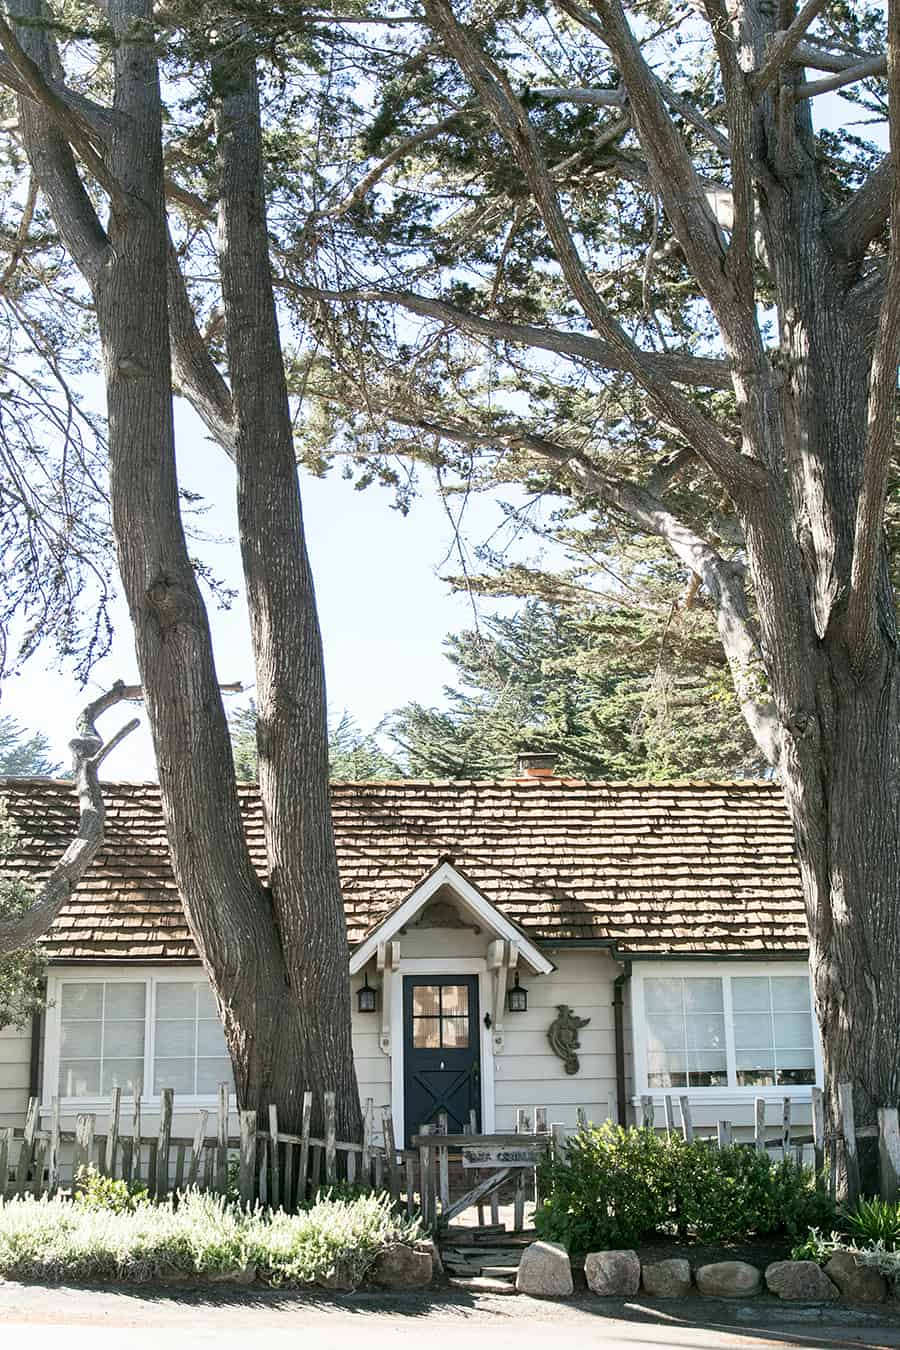 Cottage in the village on Carmel California